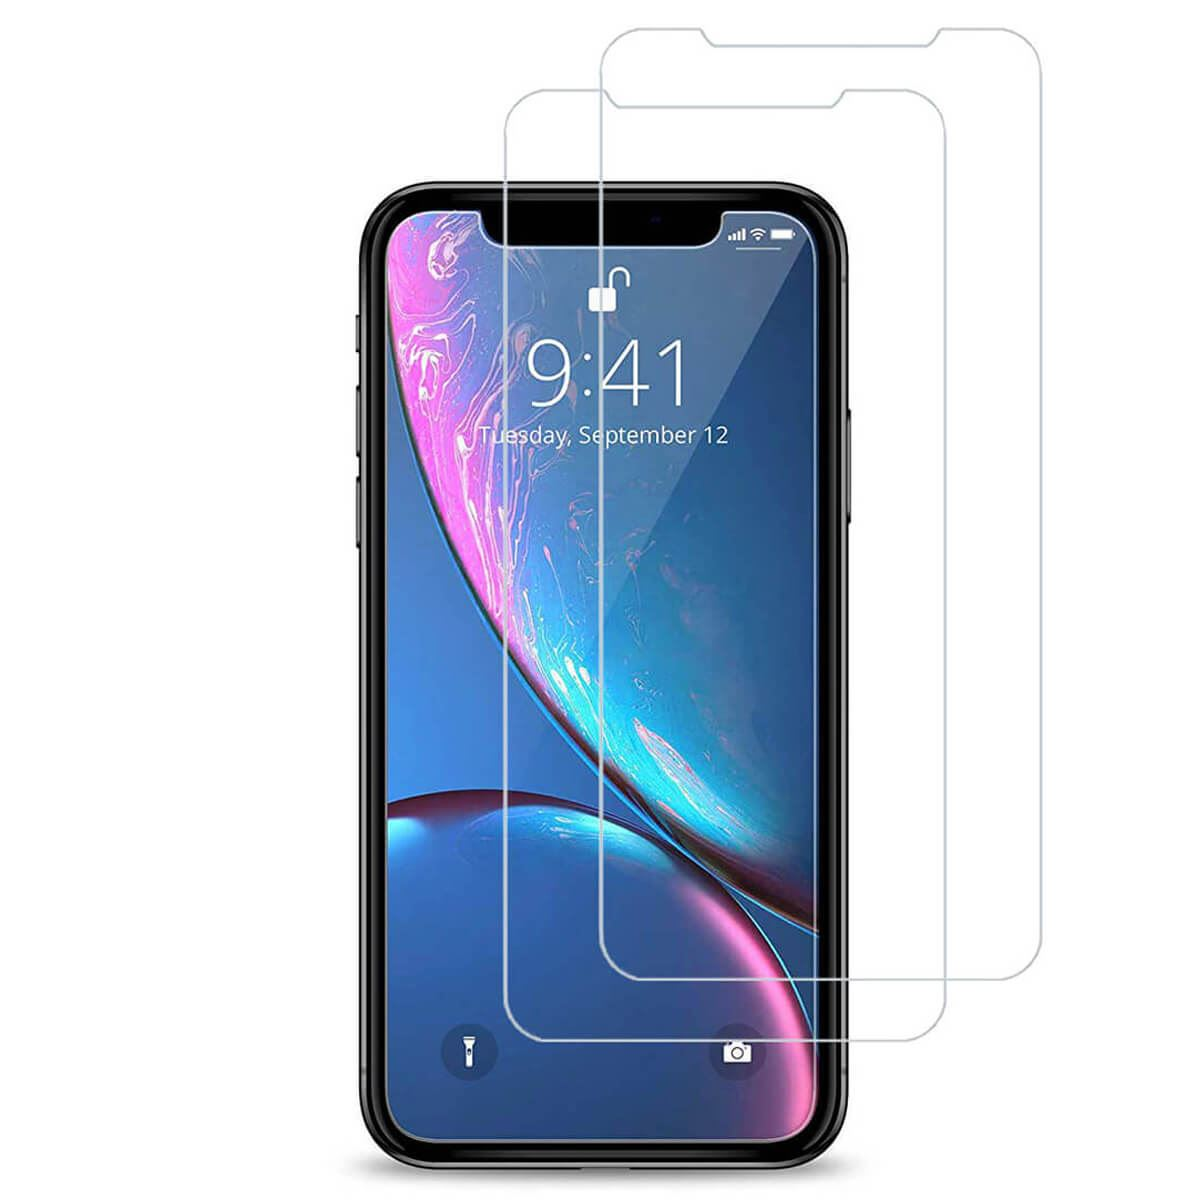 Tempered-Glass-Film-Screen-Protector-For-iPhone-12-Pro-Max-Mini-XR-XS-Max-8-7-6s thumbnail 82